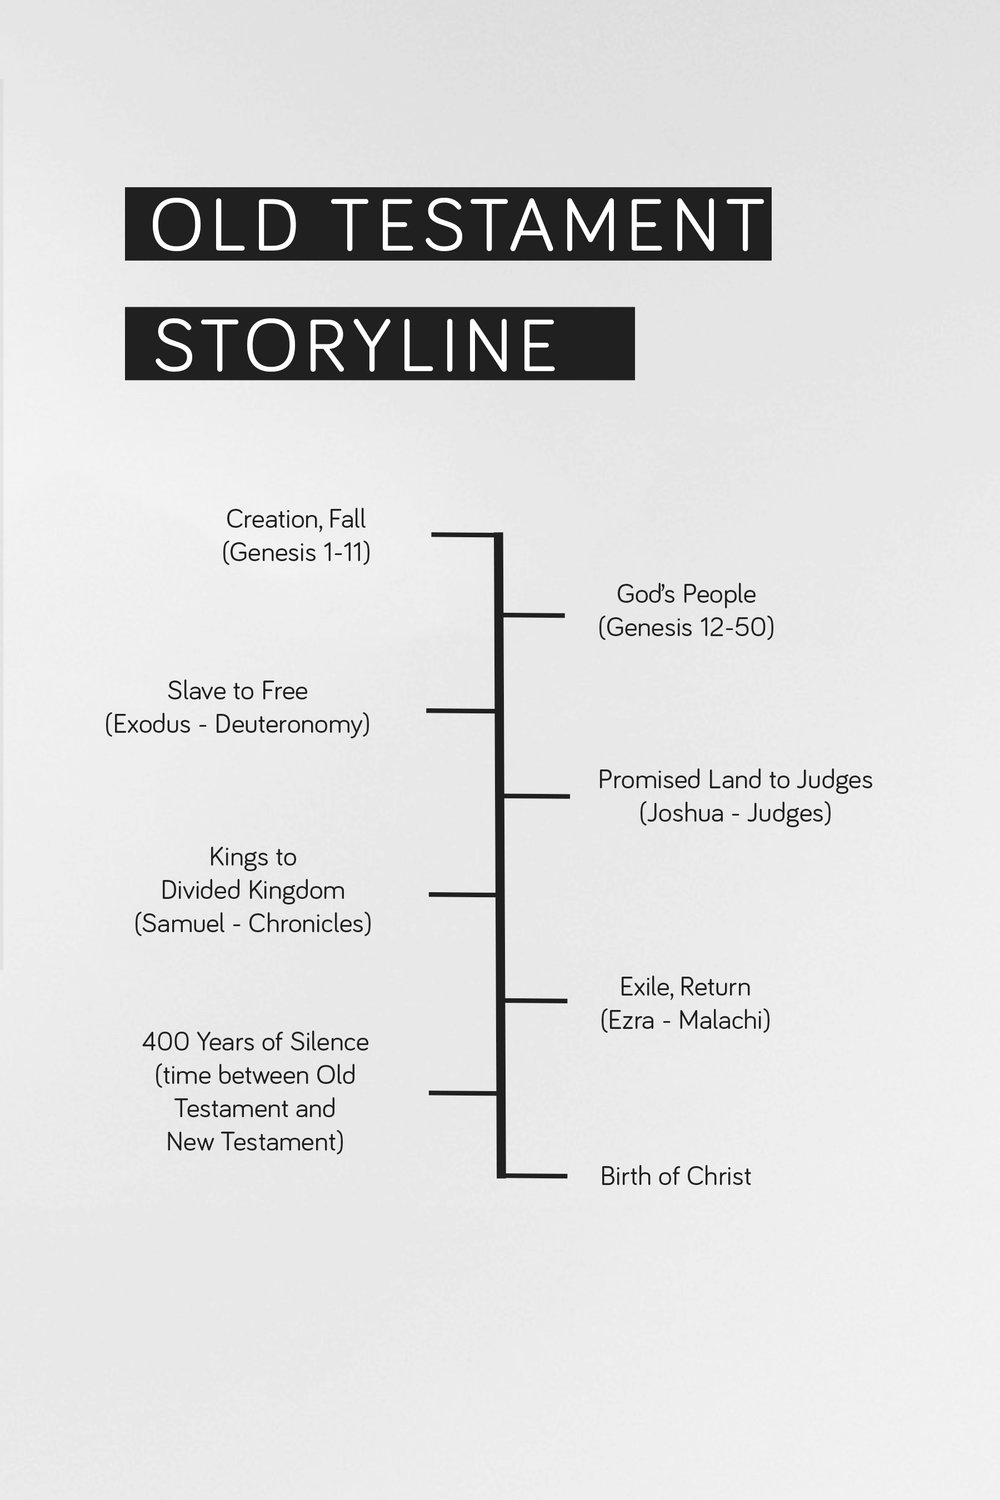 Old Testament Timeline.jpg